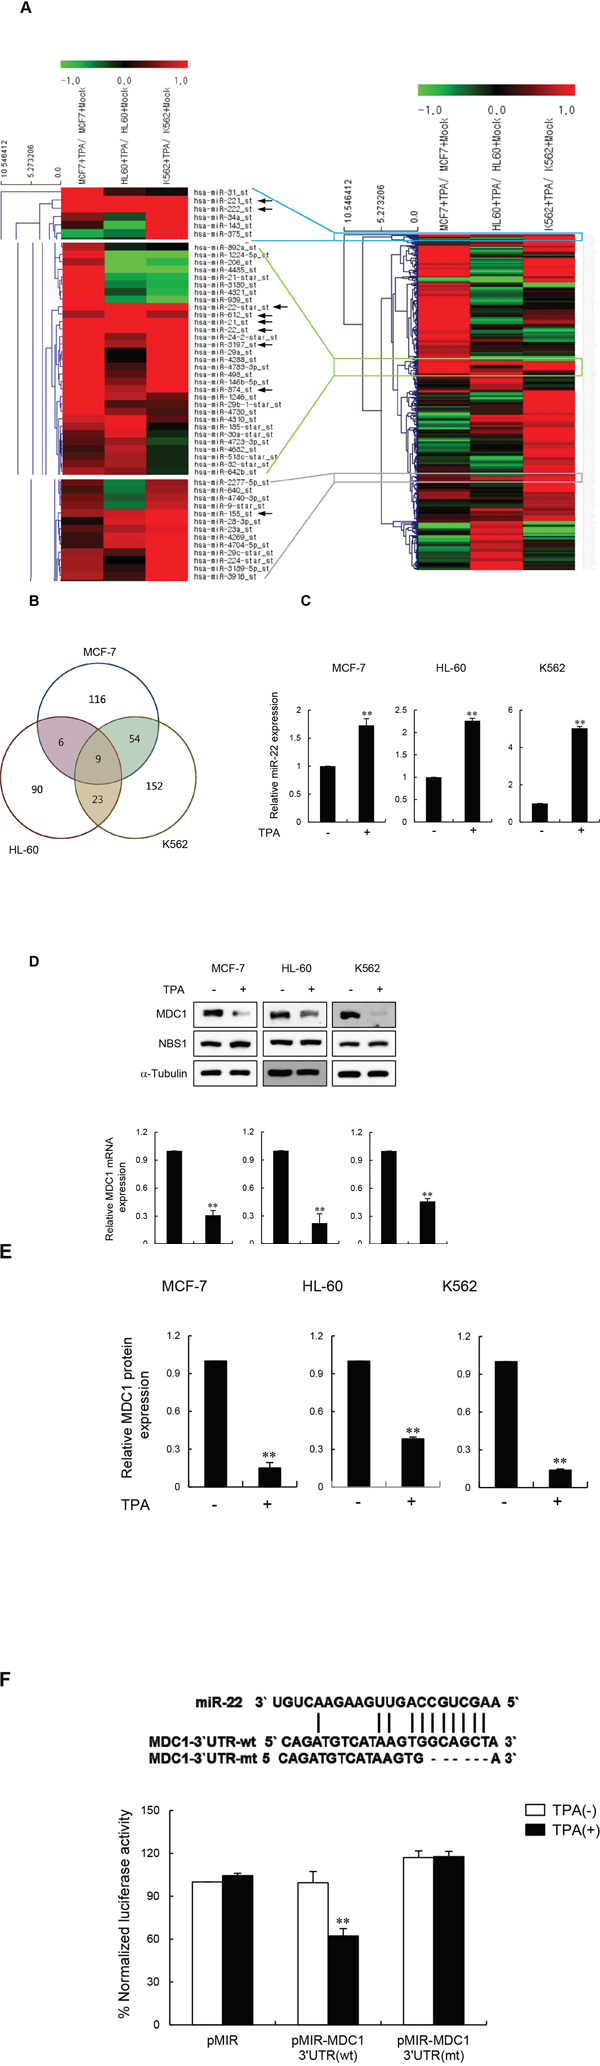 miR-22 downregulates MDC1 expression during terminal differentiation.